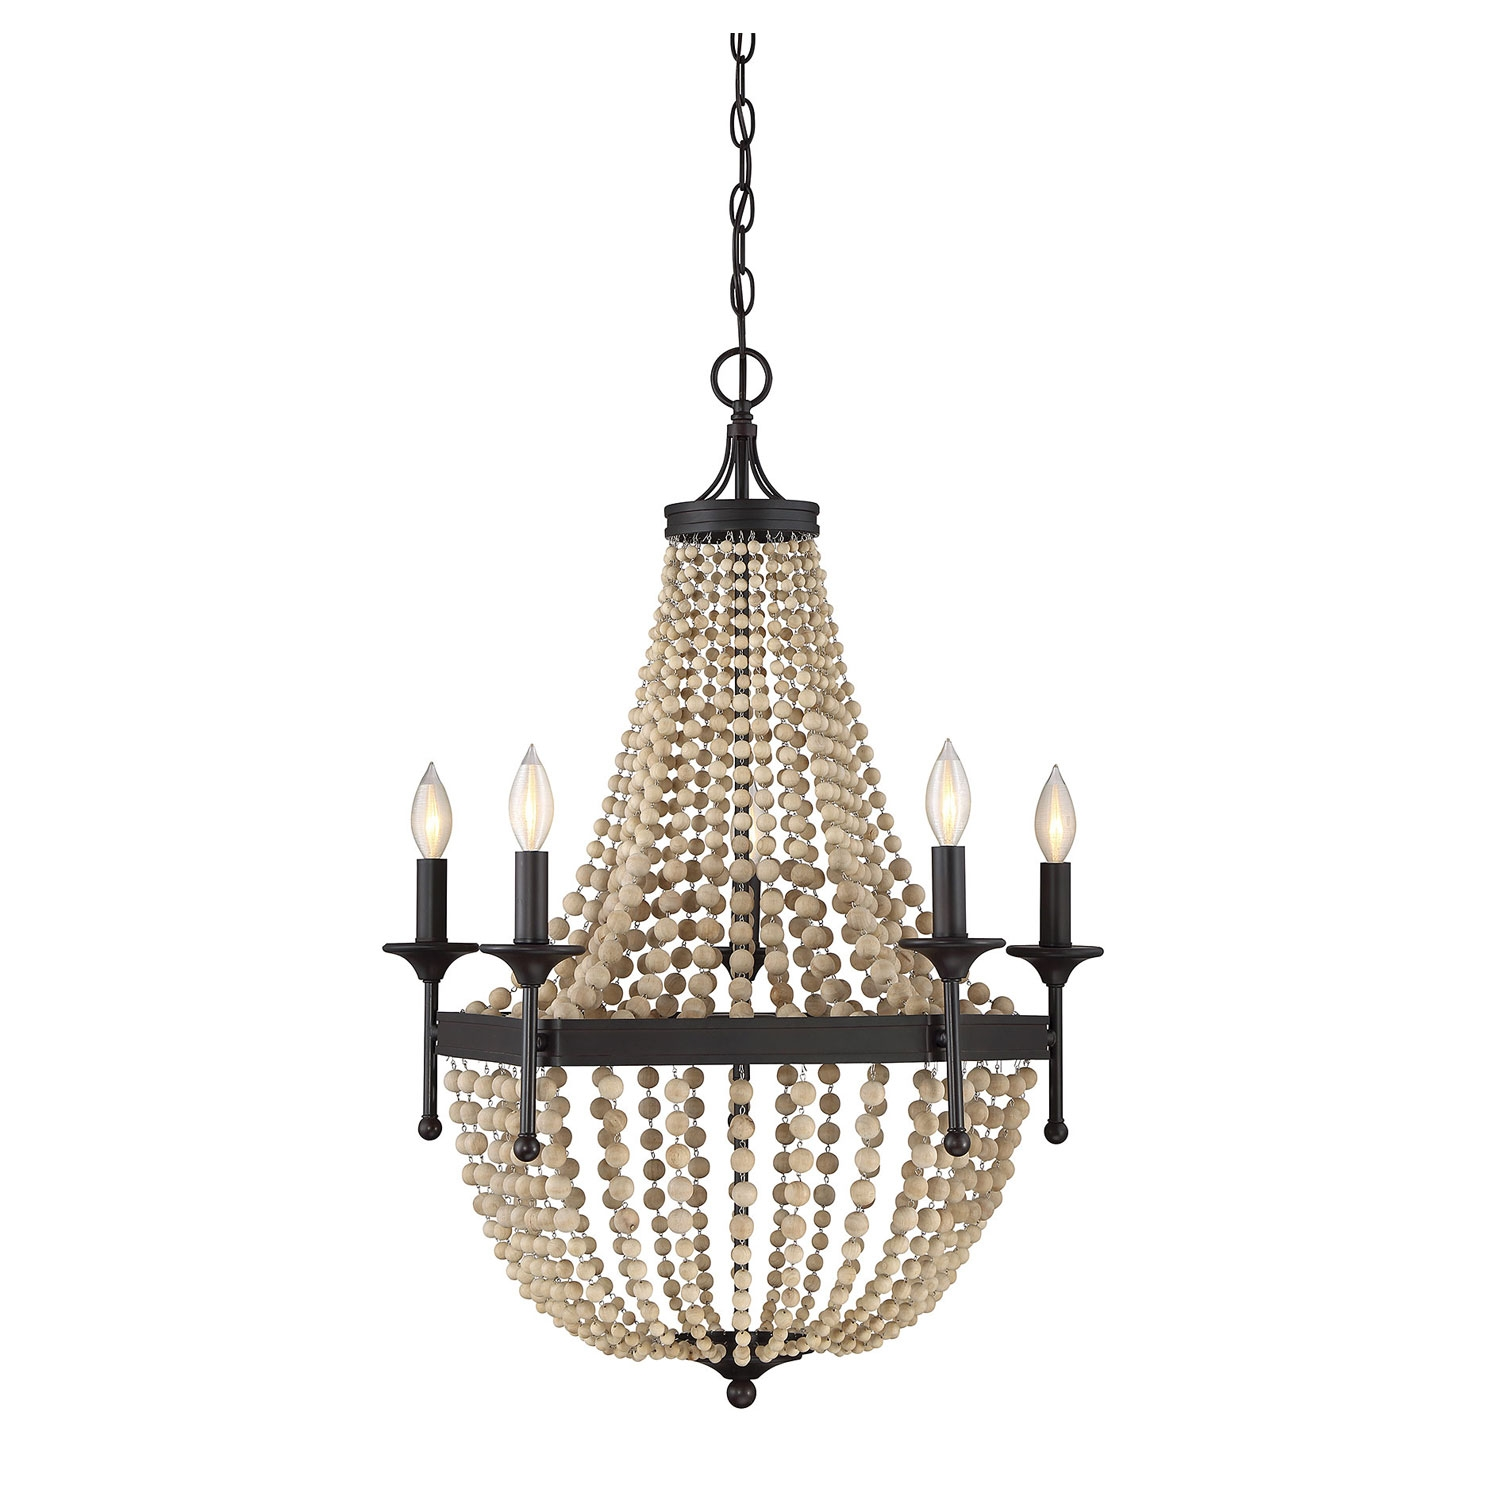 Chandeliers Crystal Modern Iron Shab Chic Country French Throughout French Chandeliers (View 13 of 15)